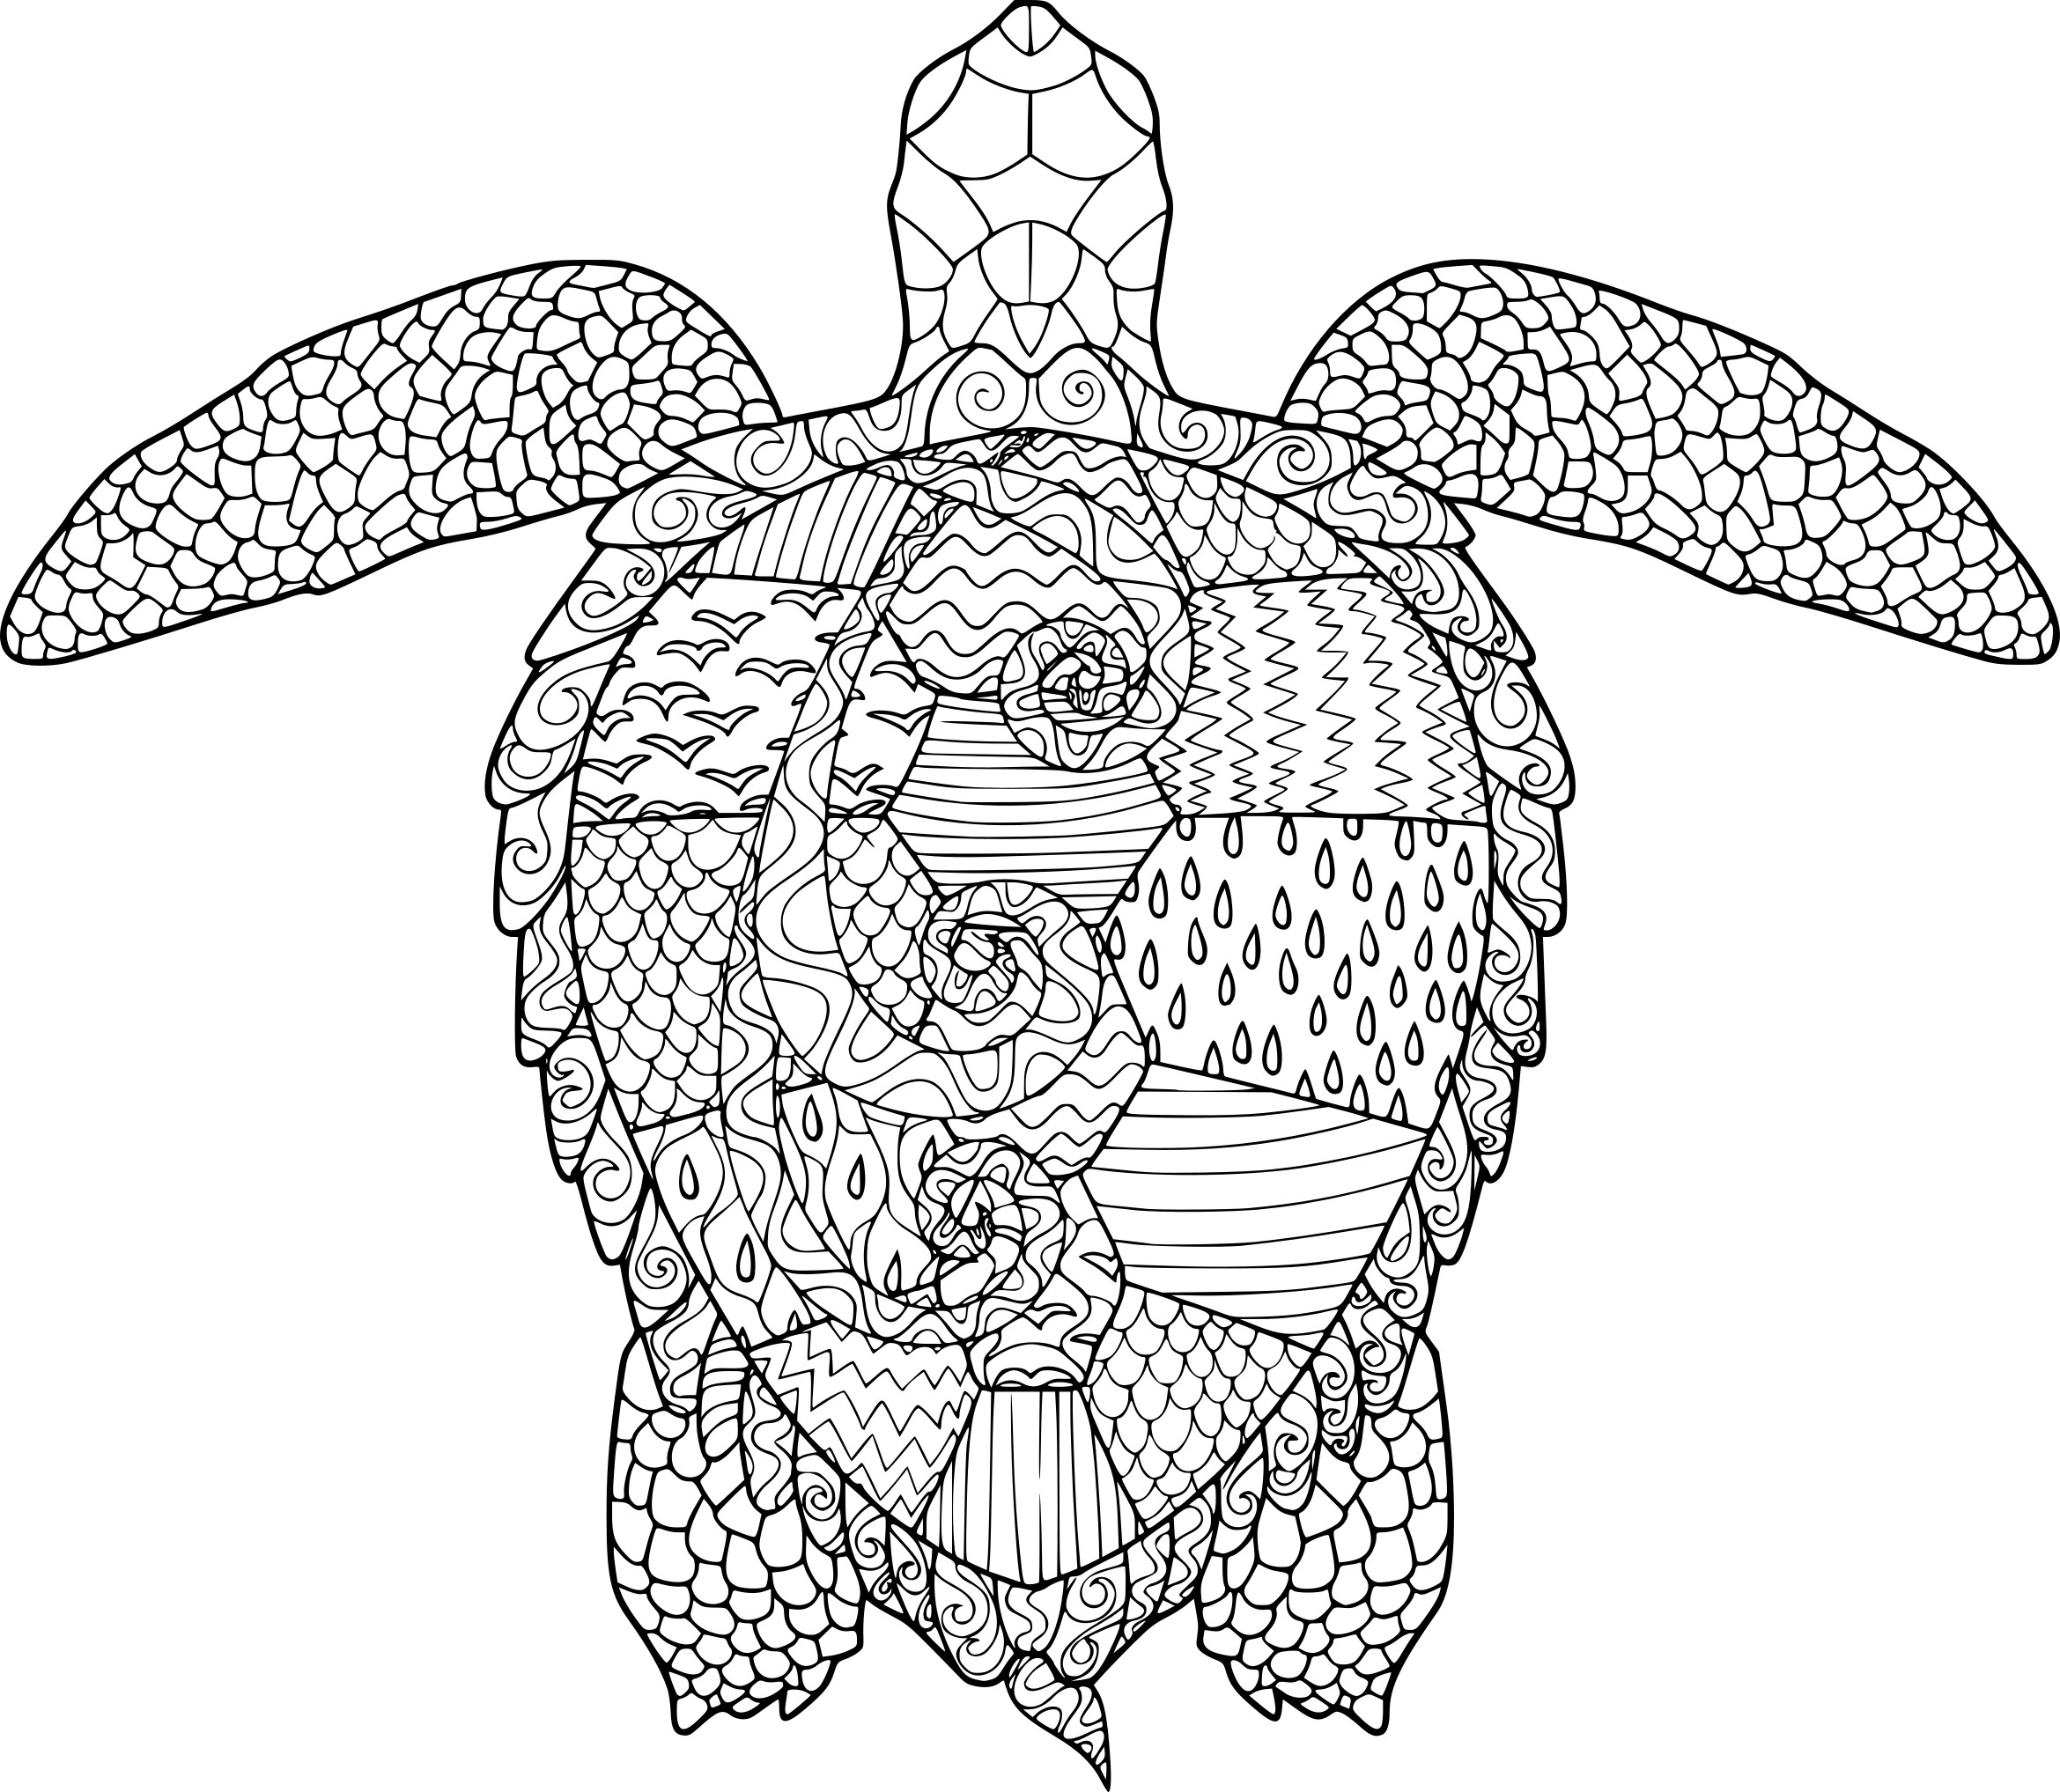 Coloriage Mandala Animaux Tortue.Coloriage Anti Stress Tortue